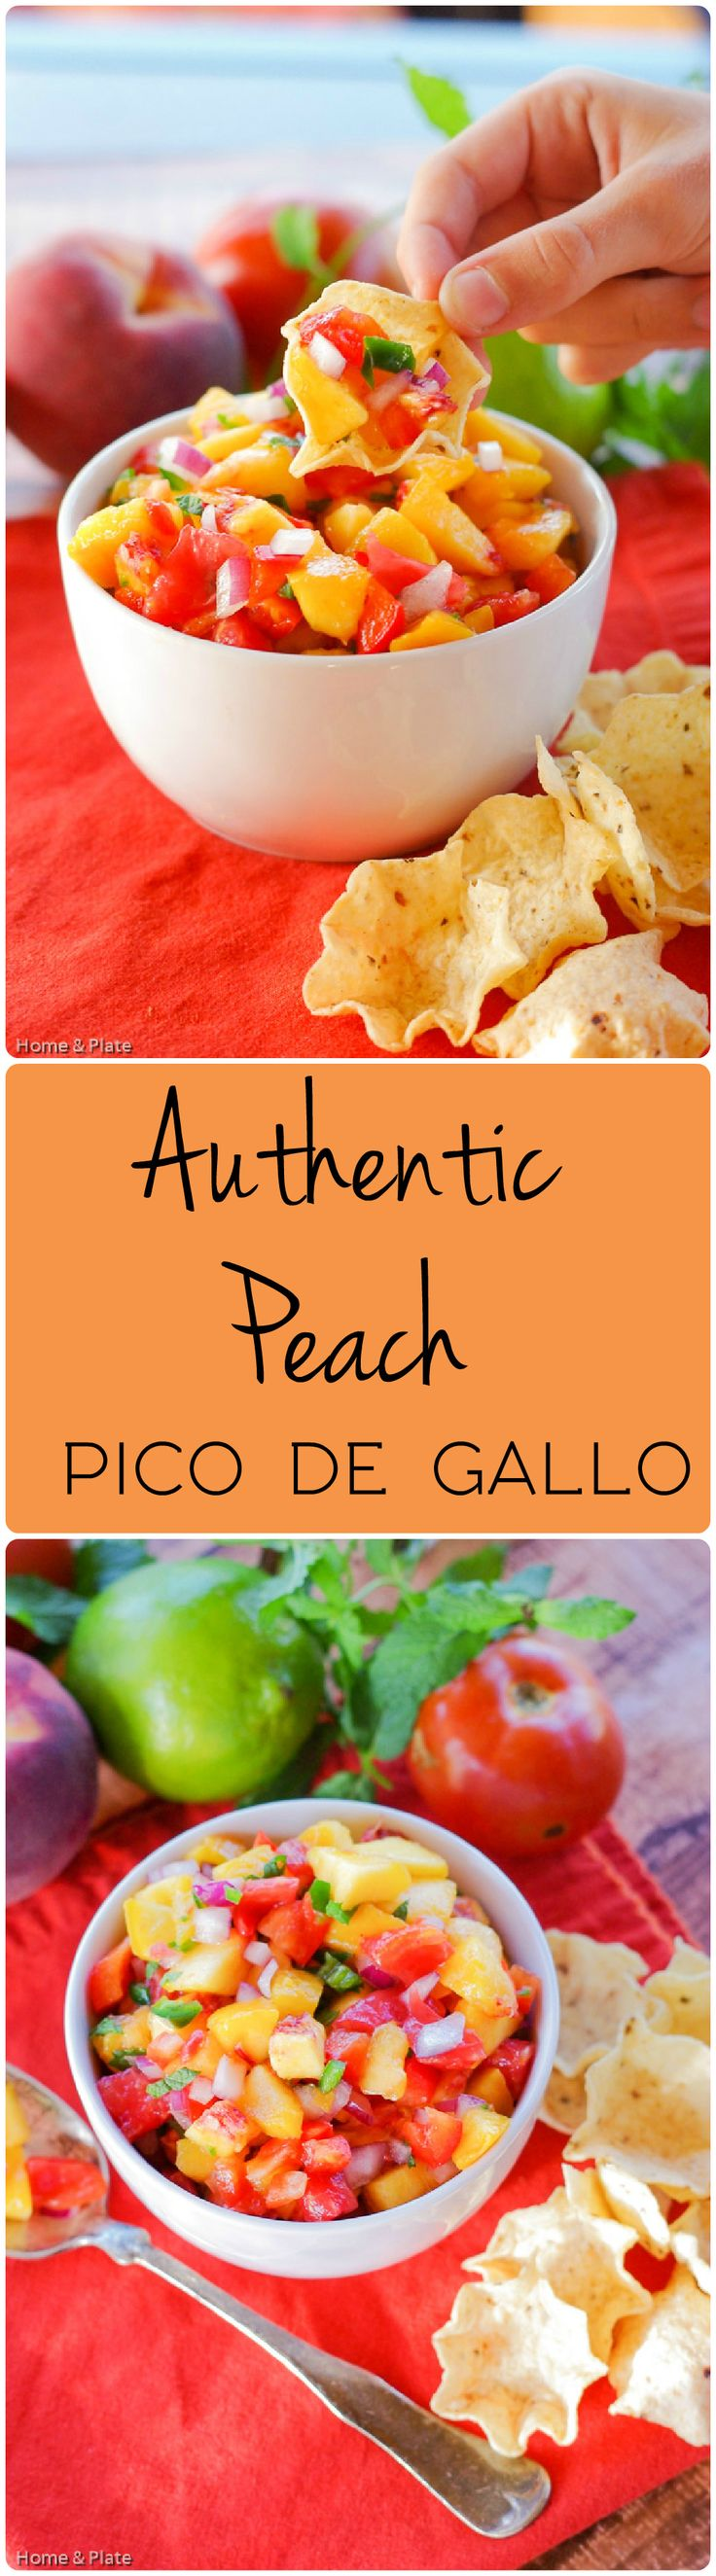 Authentic Peach Pico de Gallo | Home & Plate | www.homeandplate.com | Bring authentic Mexican flavors to your table this evening with this delicious Peach salsa.